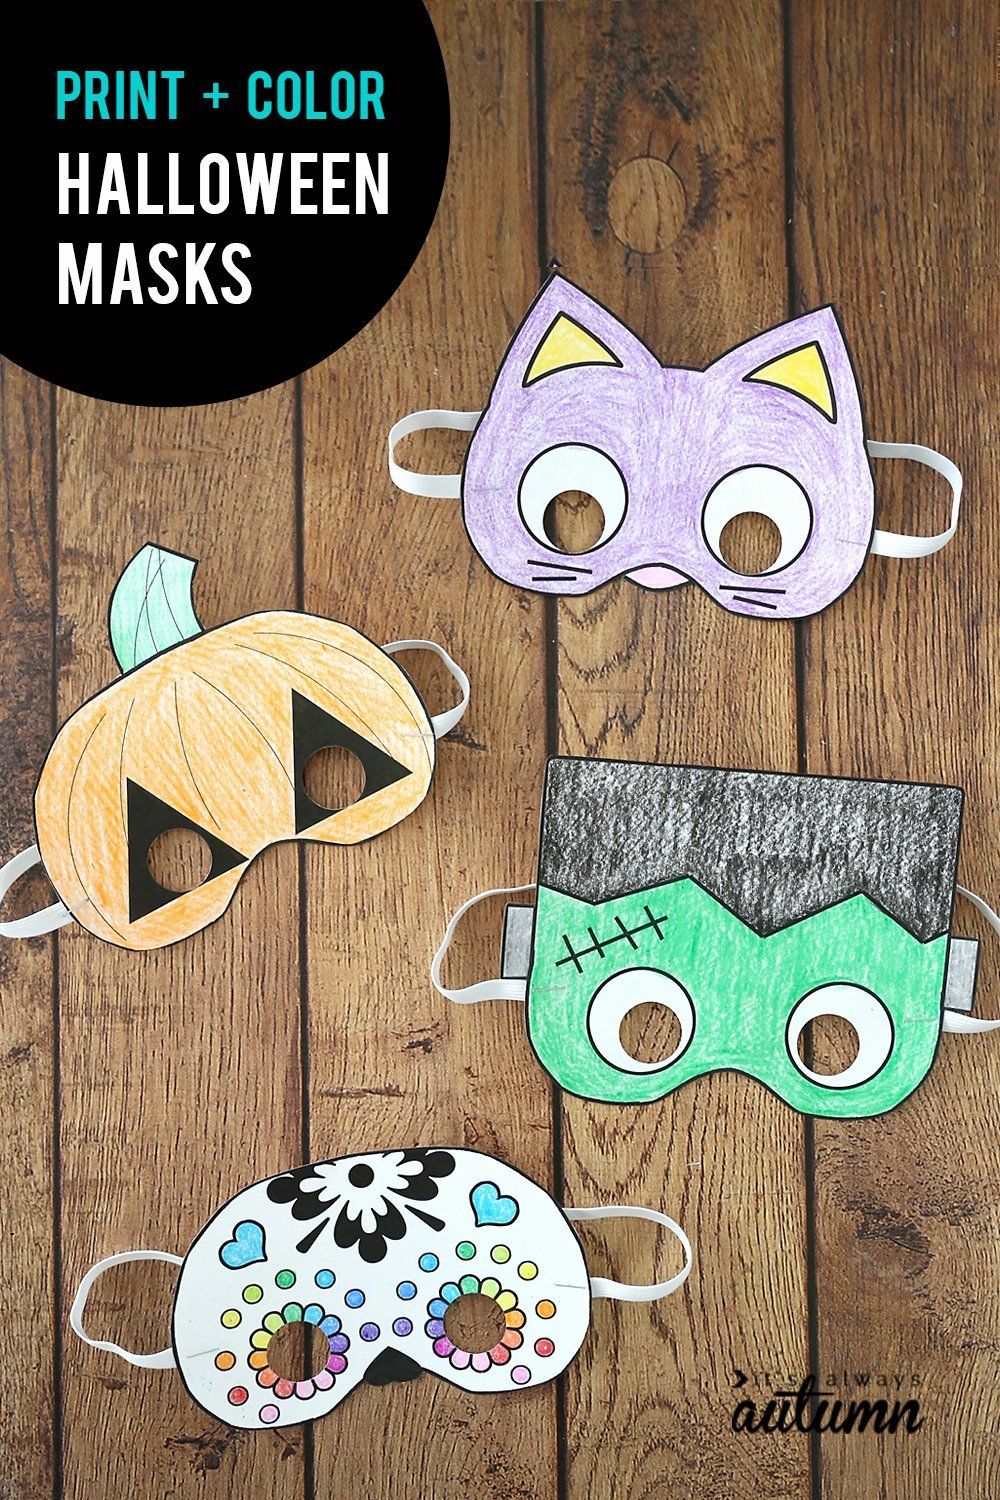 Coloring Activities for 1 Year Olds Fresh Halloween Masks